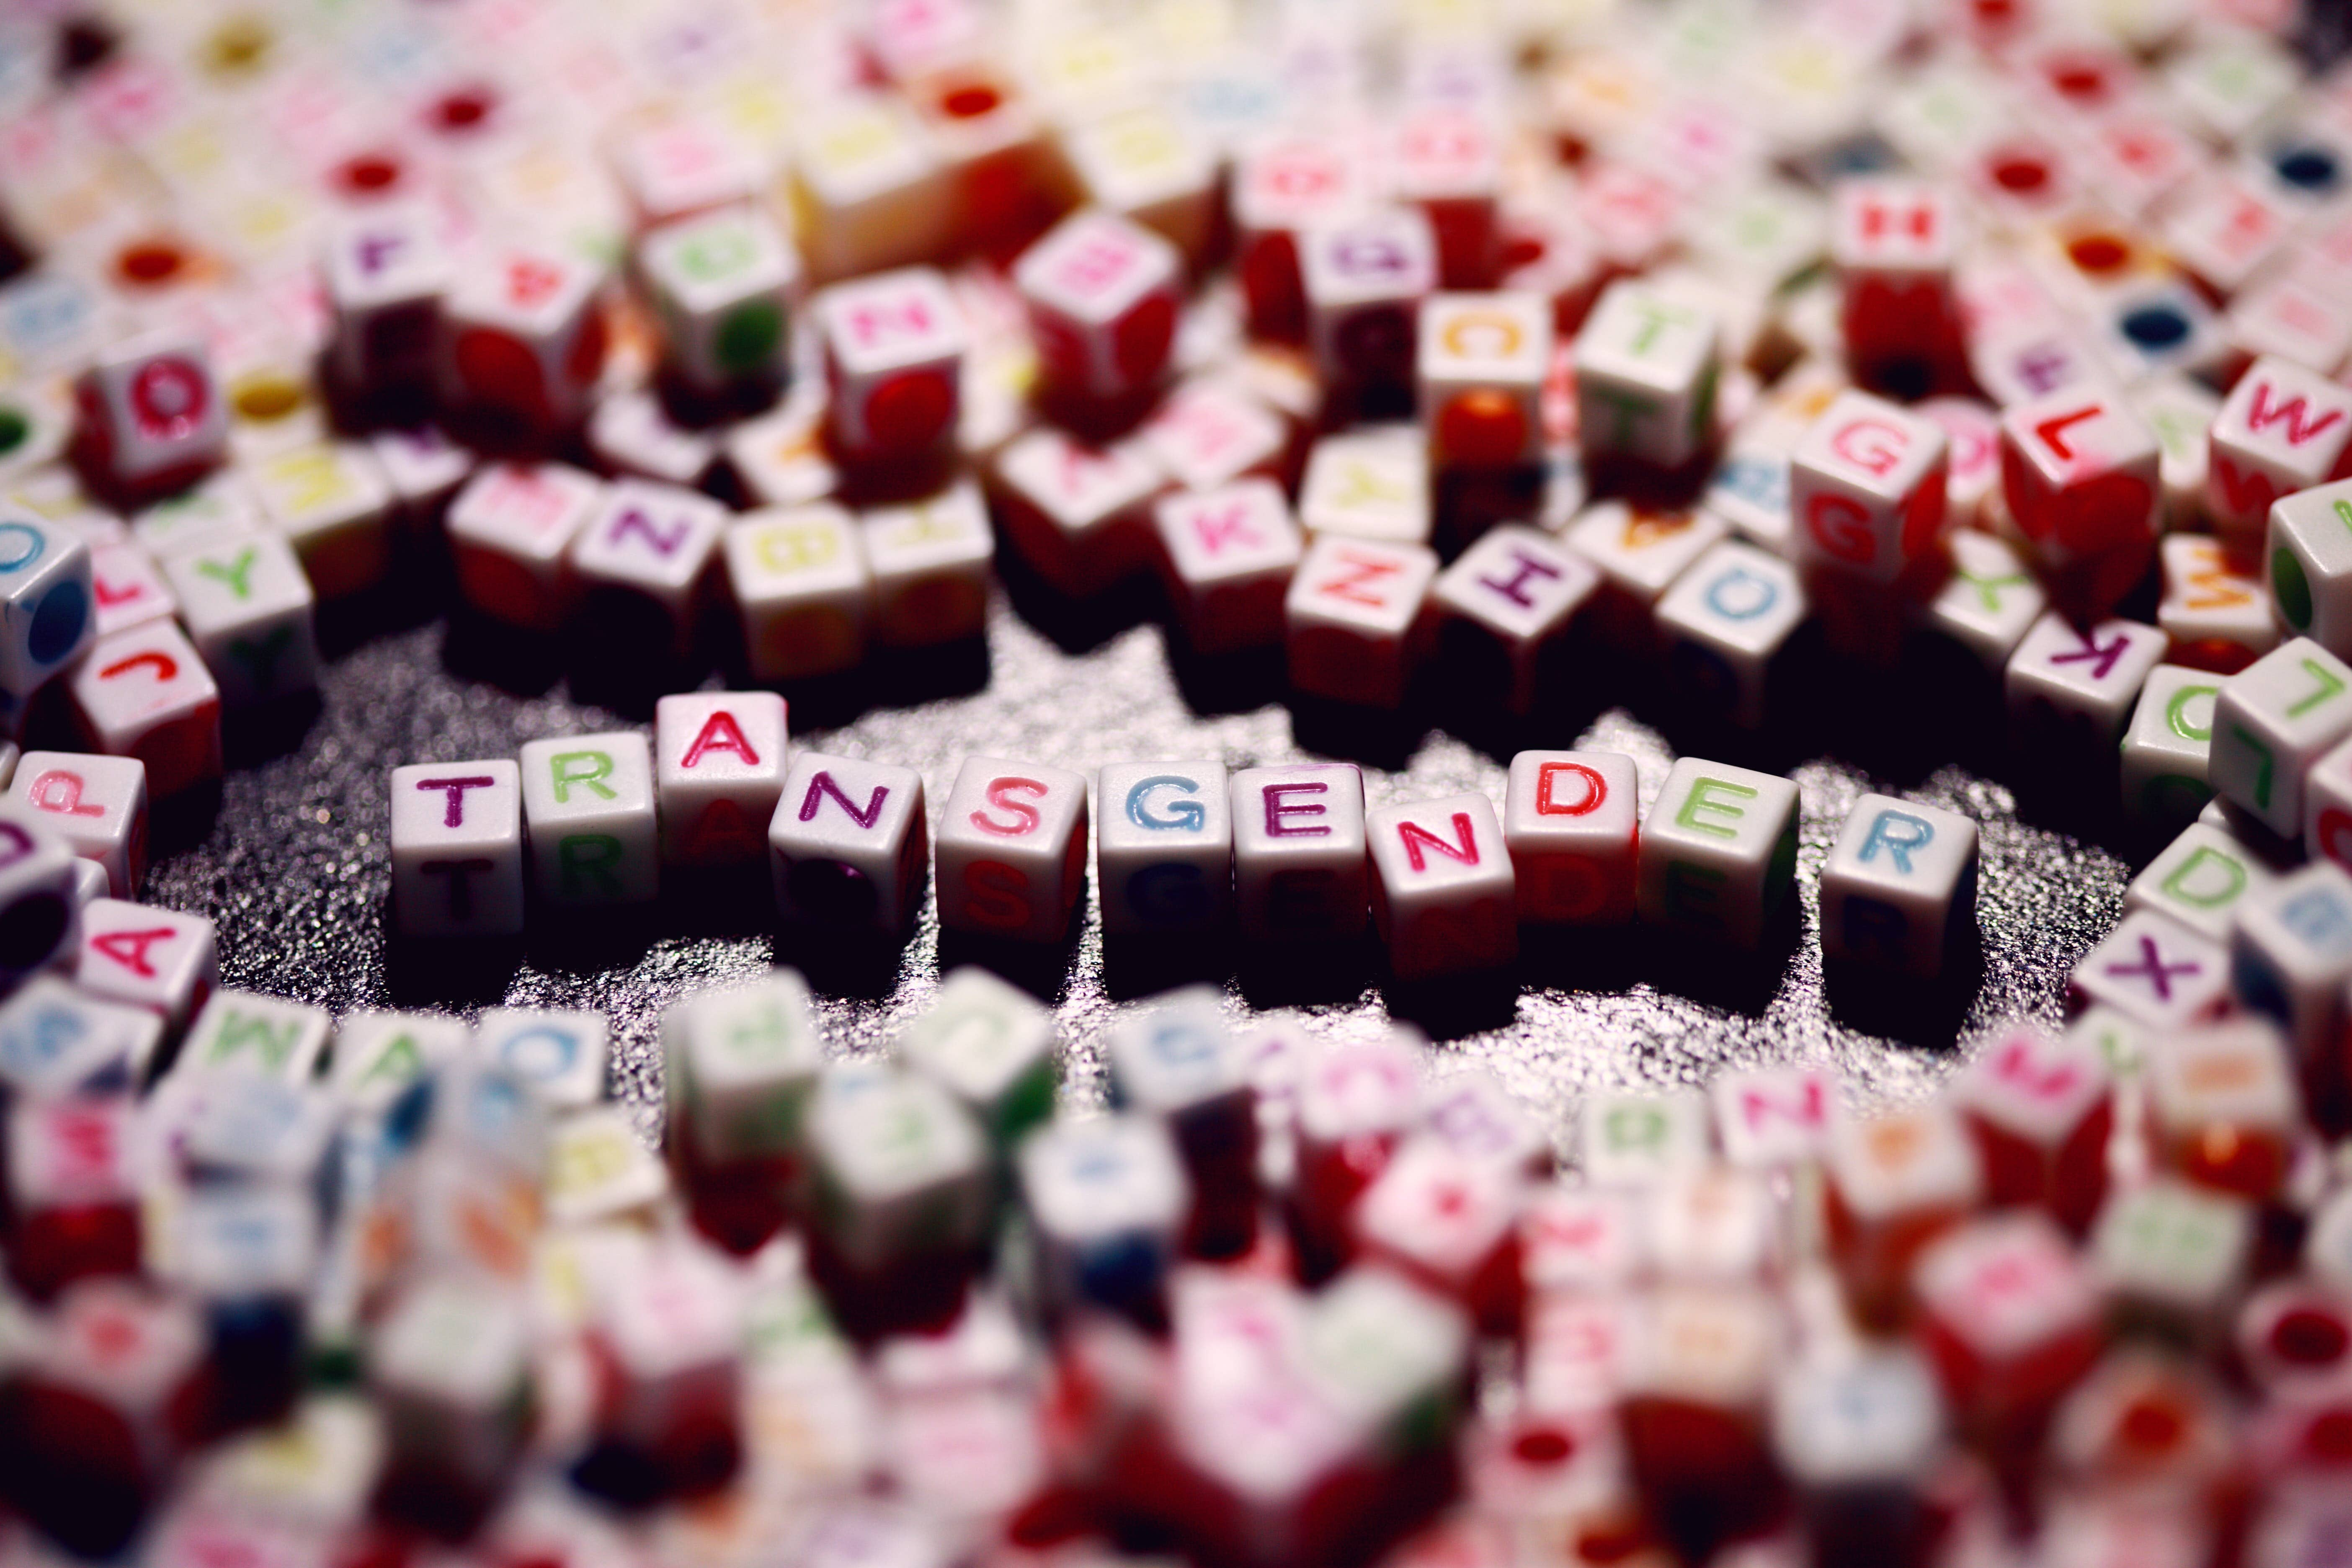 coloured plastic toy blocks spelling out the word 'transgender'